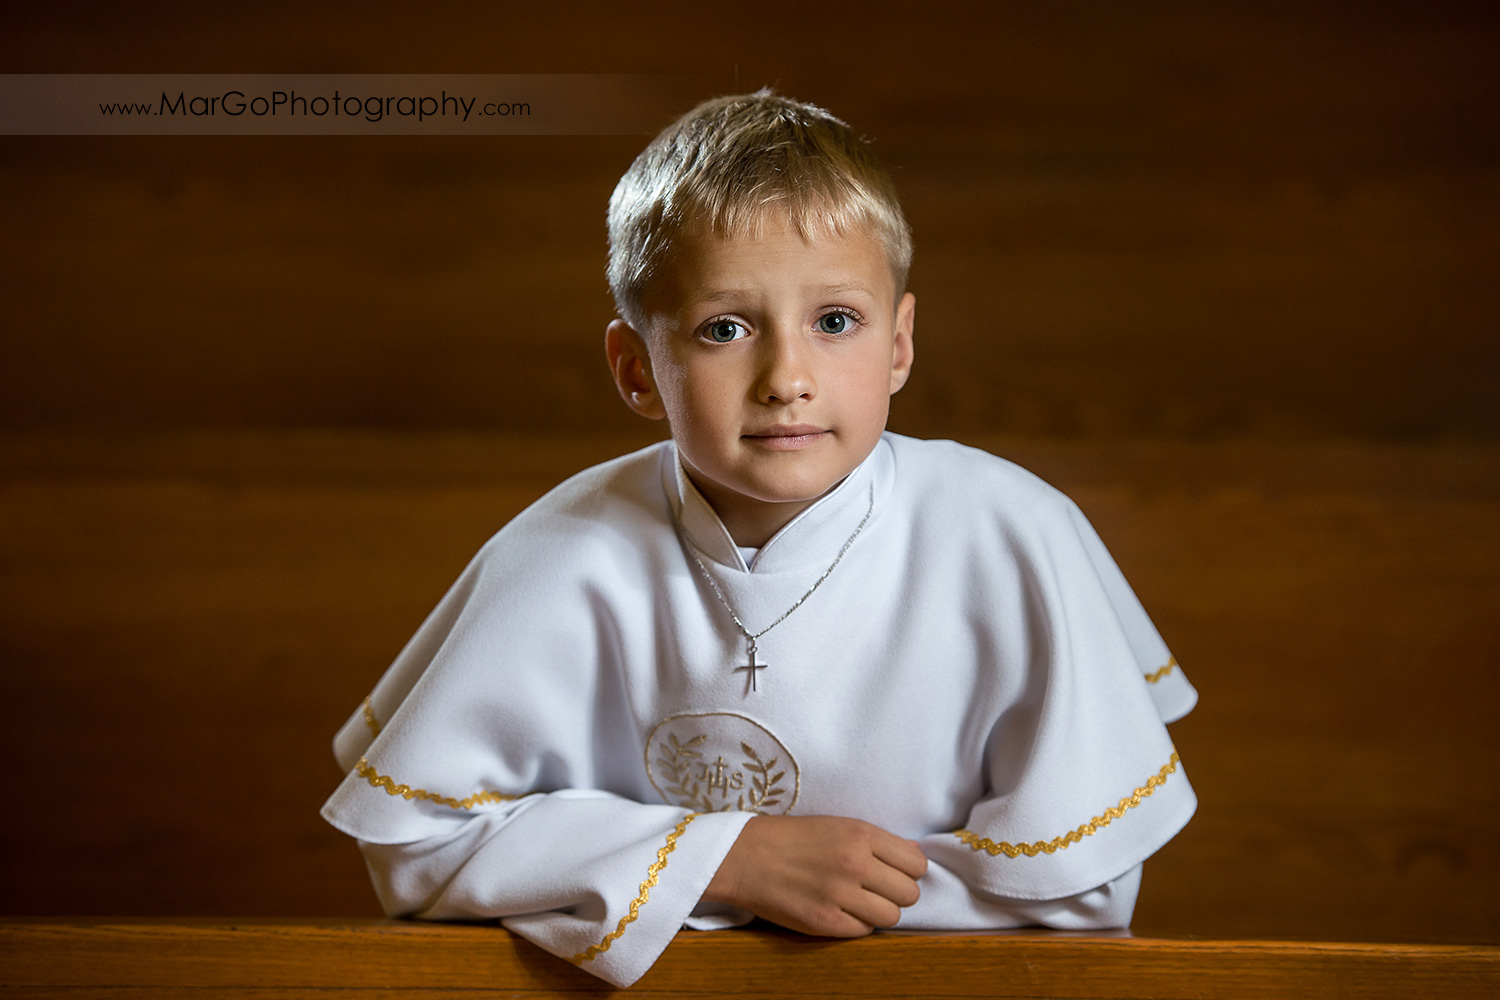 first communion boy in white alb in wooden San Jose church pews